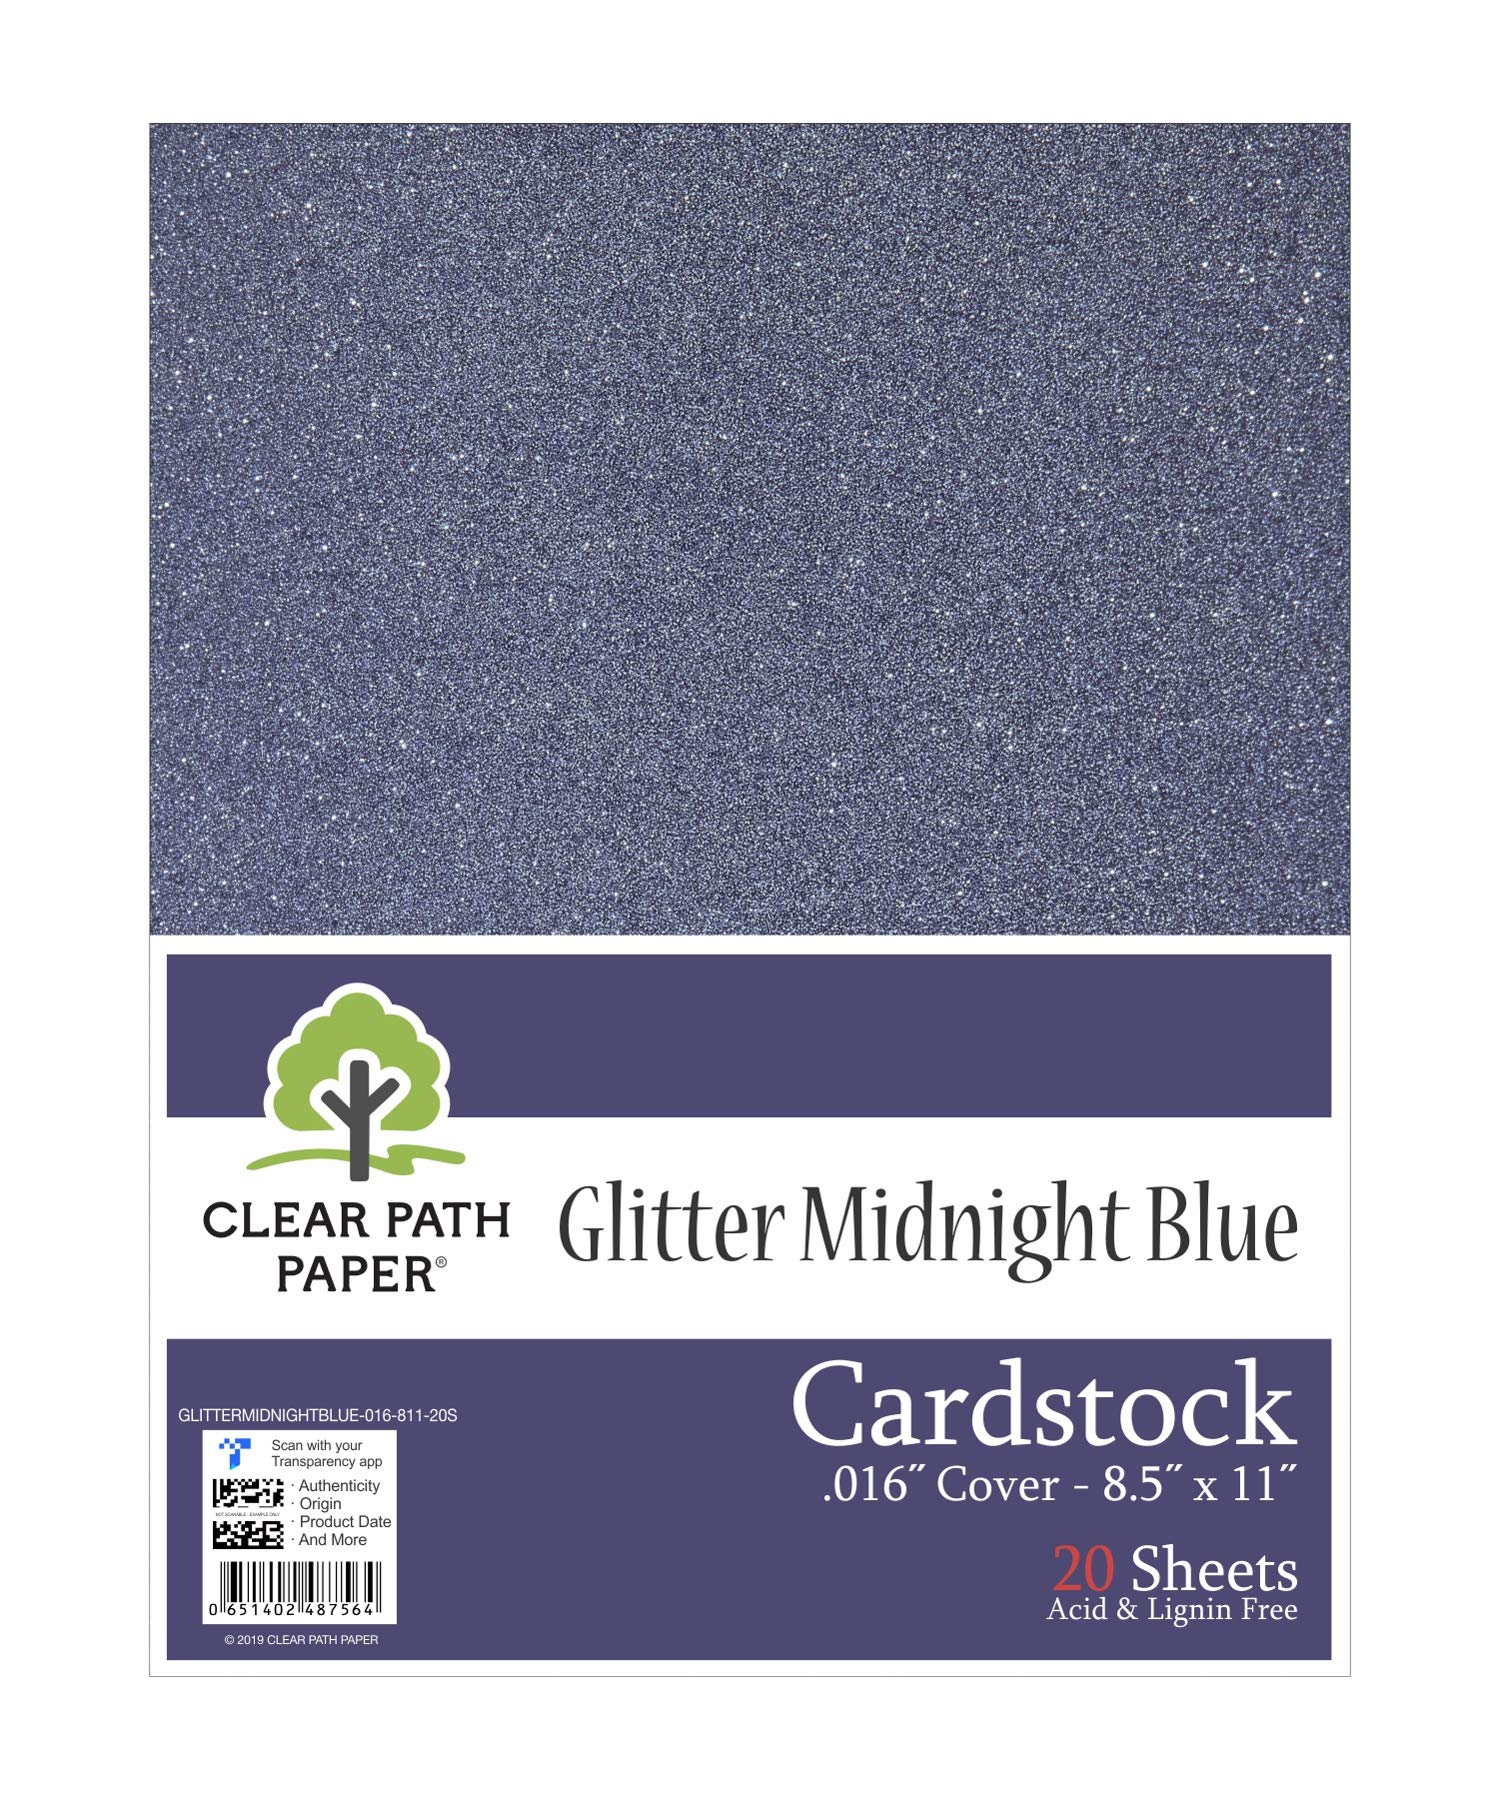 "Glitter Midnight Blue Cardstock - 8.5 x 11 inch - .016"" Thick - 20 Sheets"